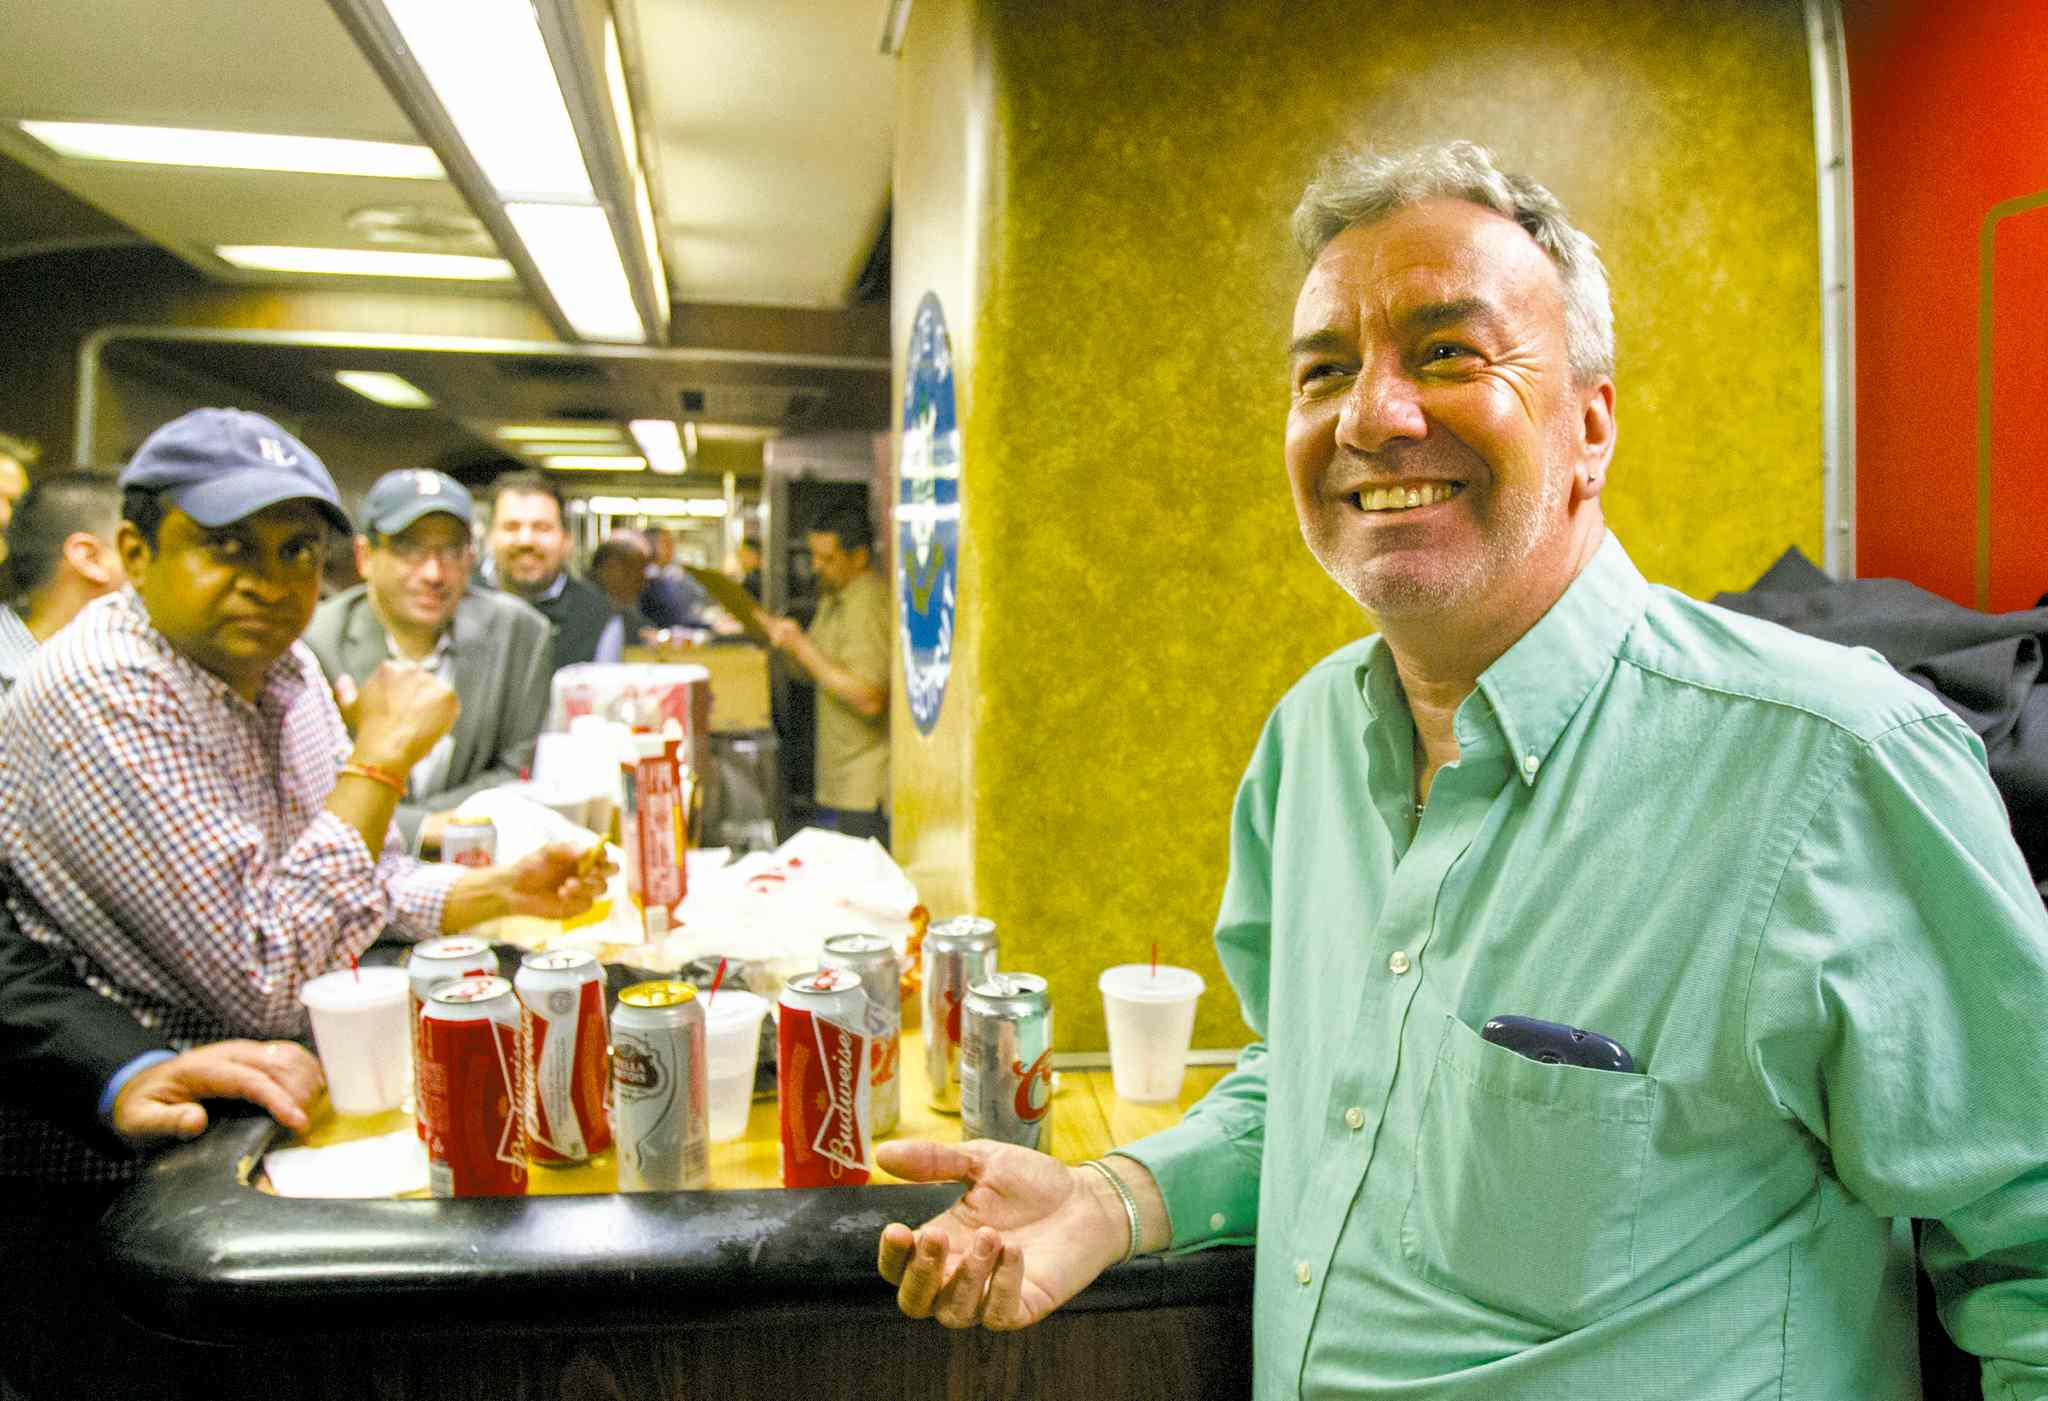 Mark DelMonte (right) of Wallingford, Conn., joins other commuters in the Connecticut-Manhattan train�s bar car on Friday, the last day of the bar�s existence.